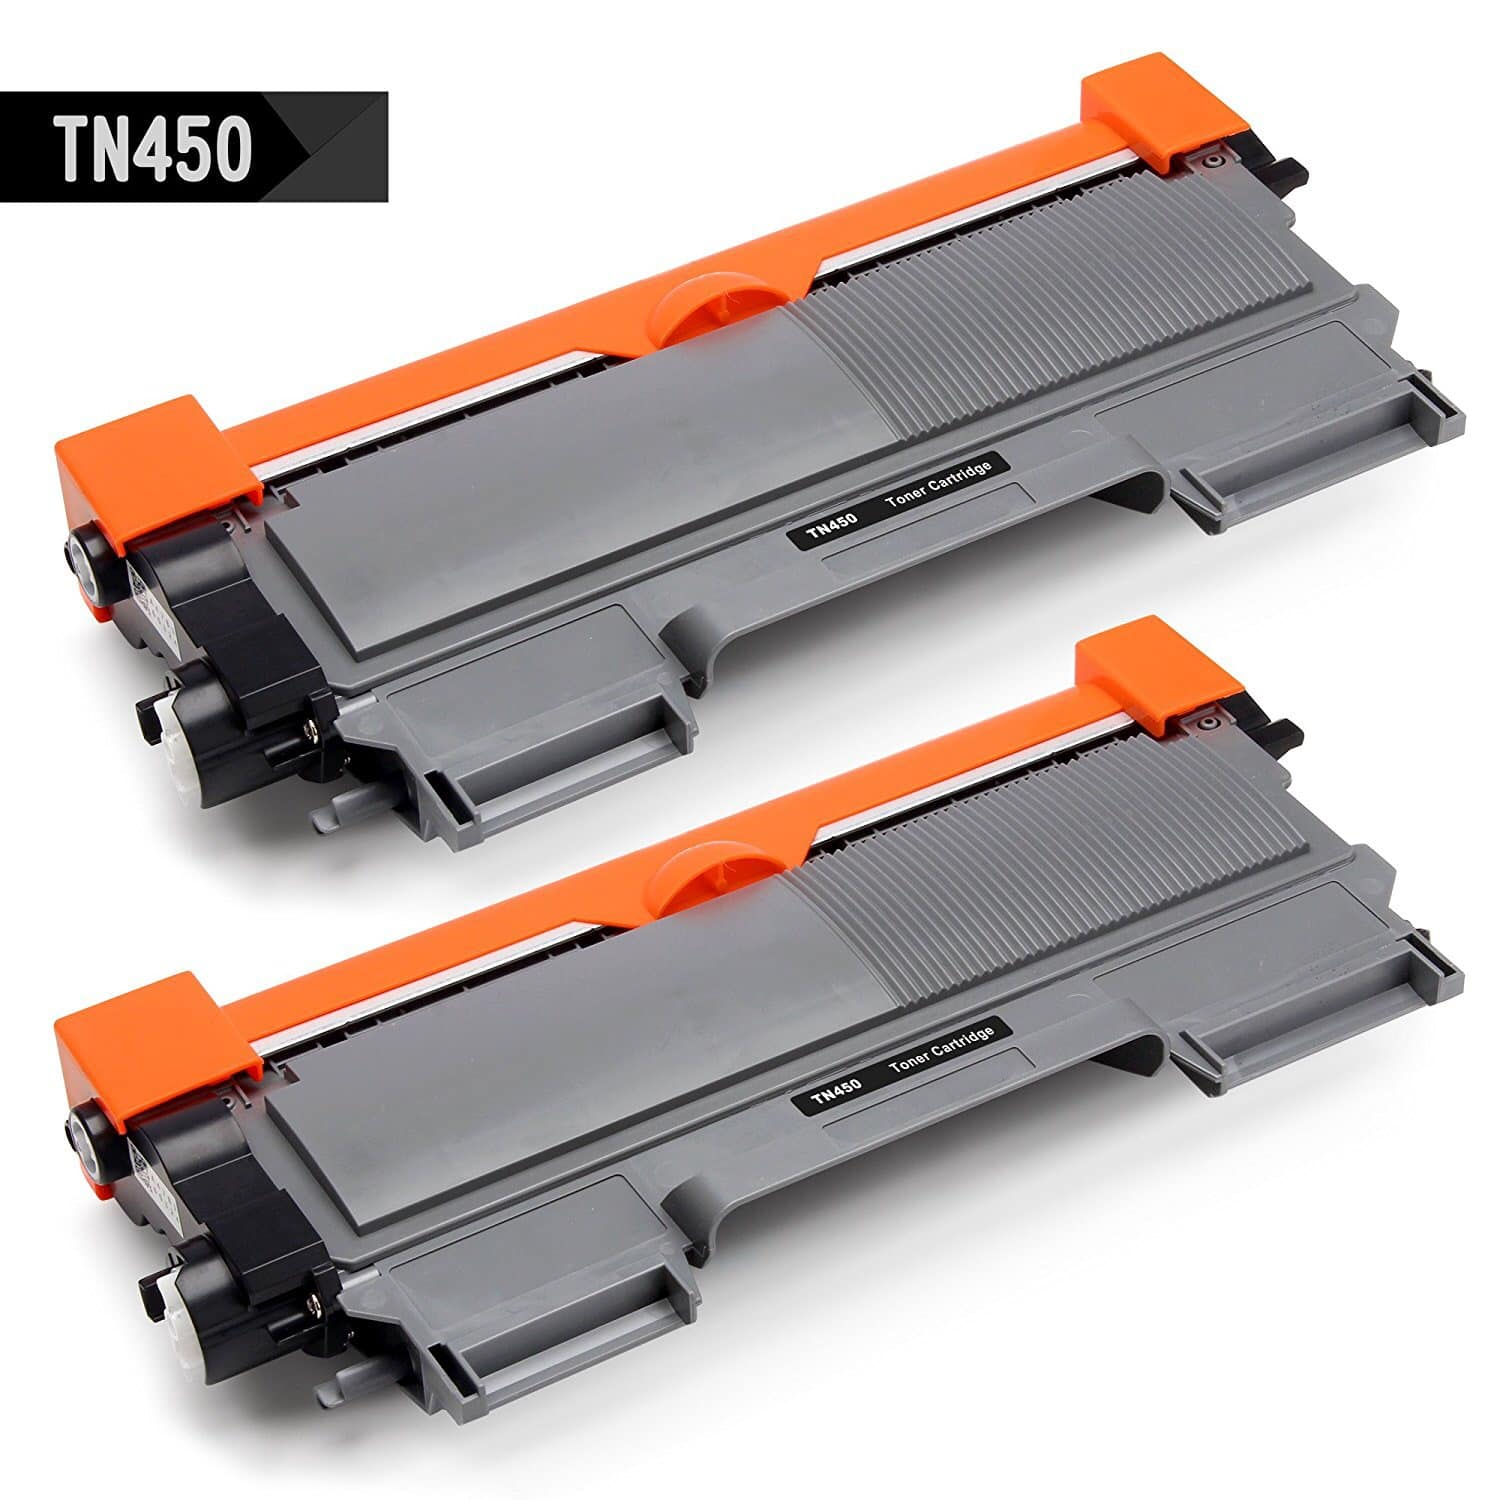 2-Pk IKONG Compatible Brother TN450 TN660 Toner Cartridges (Black